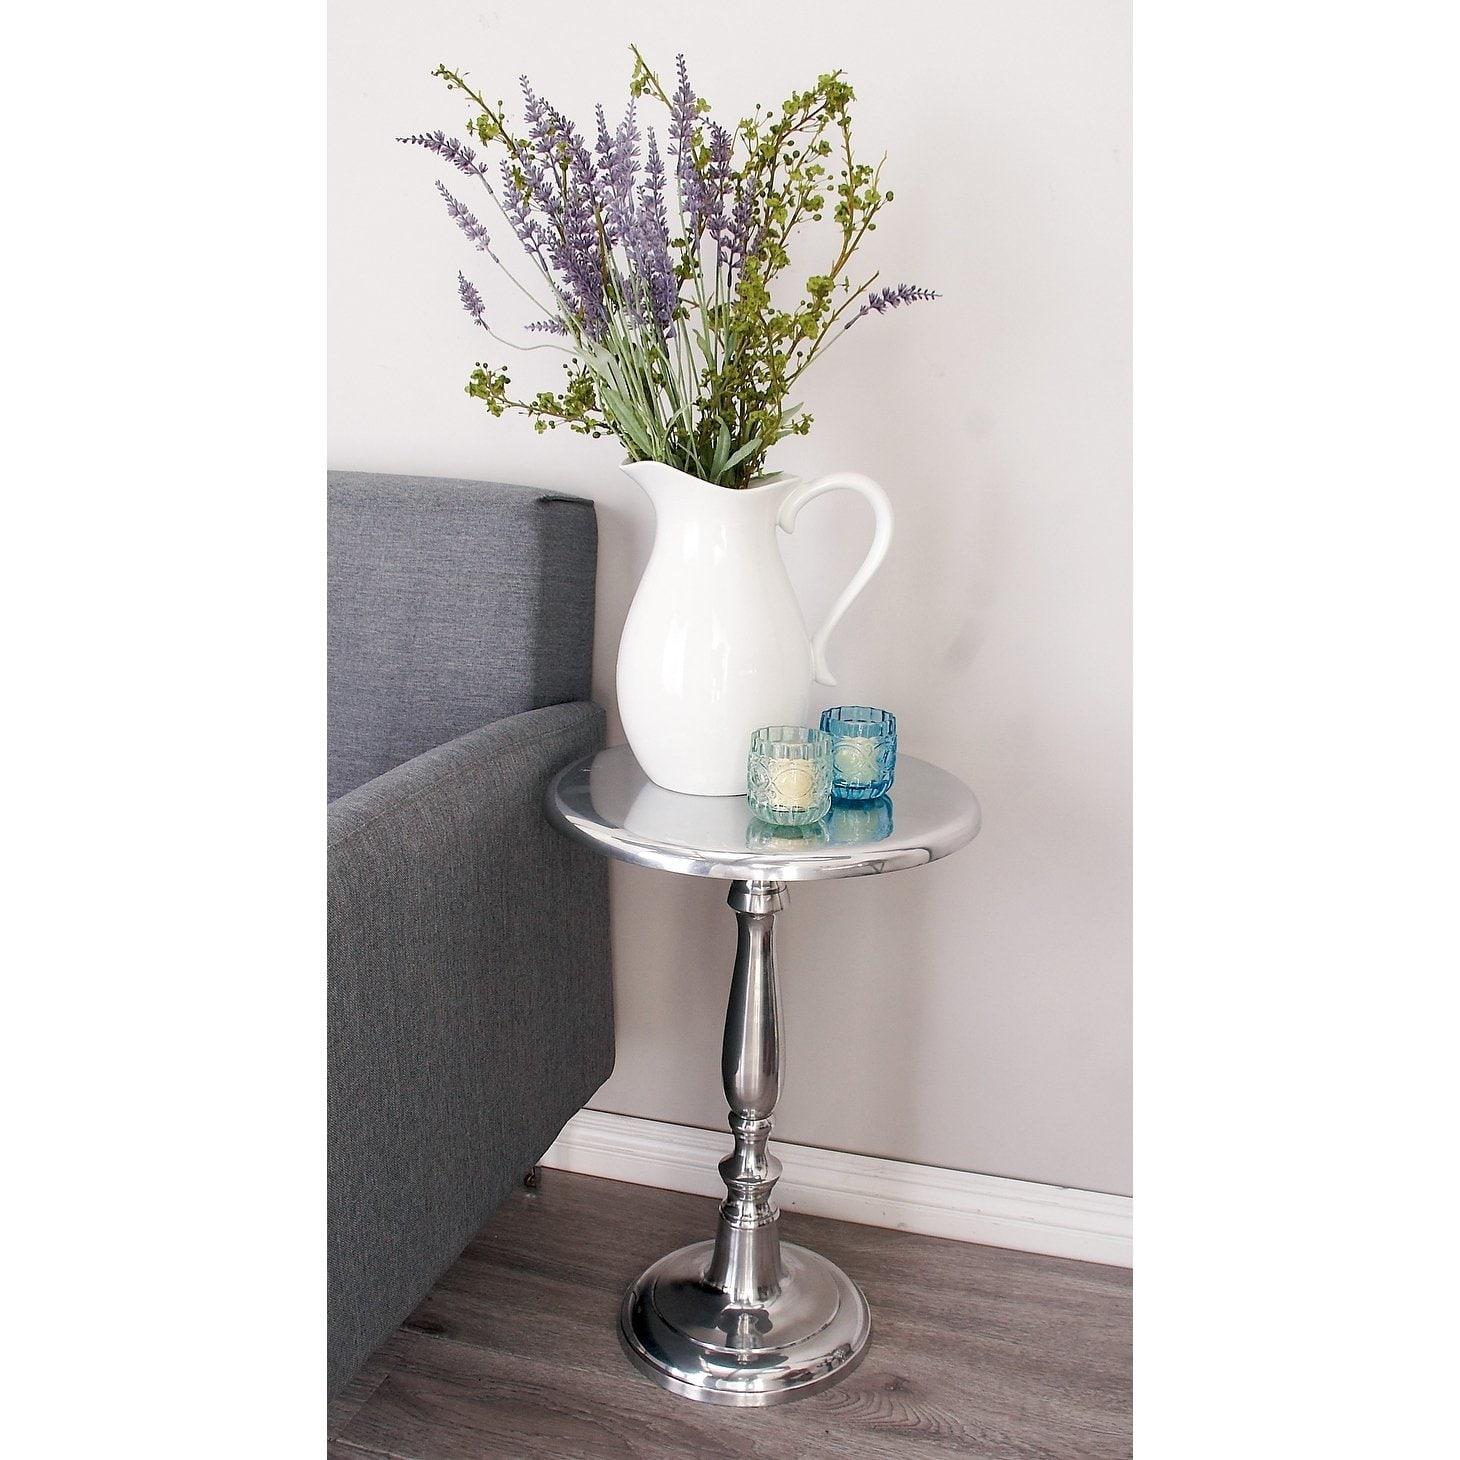 contemporary inch silver metal pedestal accent table studio free shipping today pottery barn lorraine dining chairs glass top patio end tables small chrome vacuum lucite acrylic